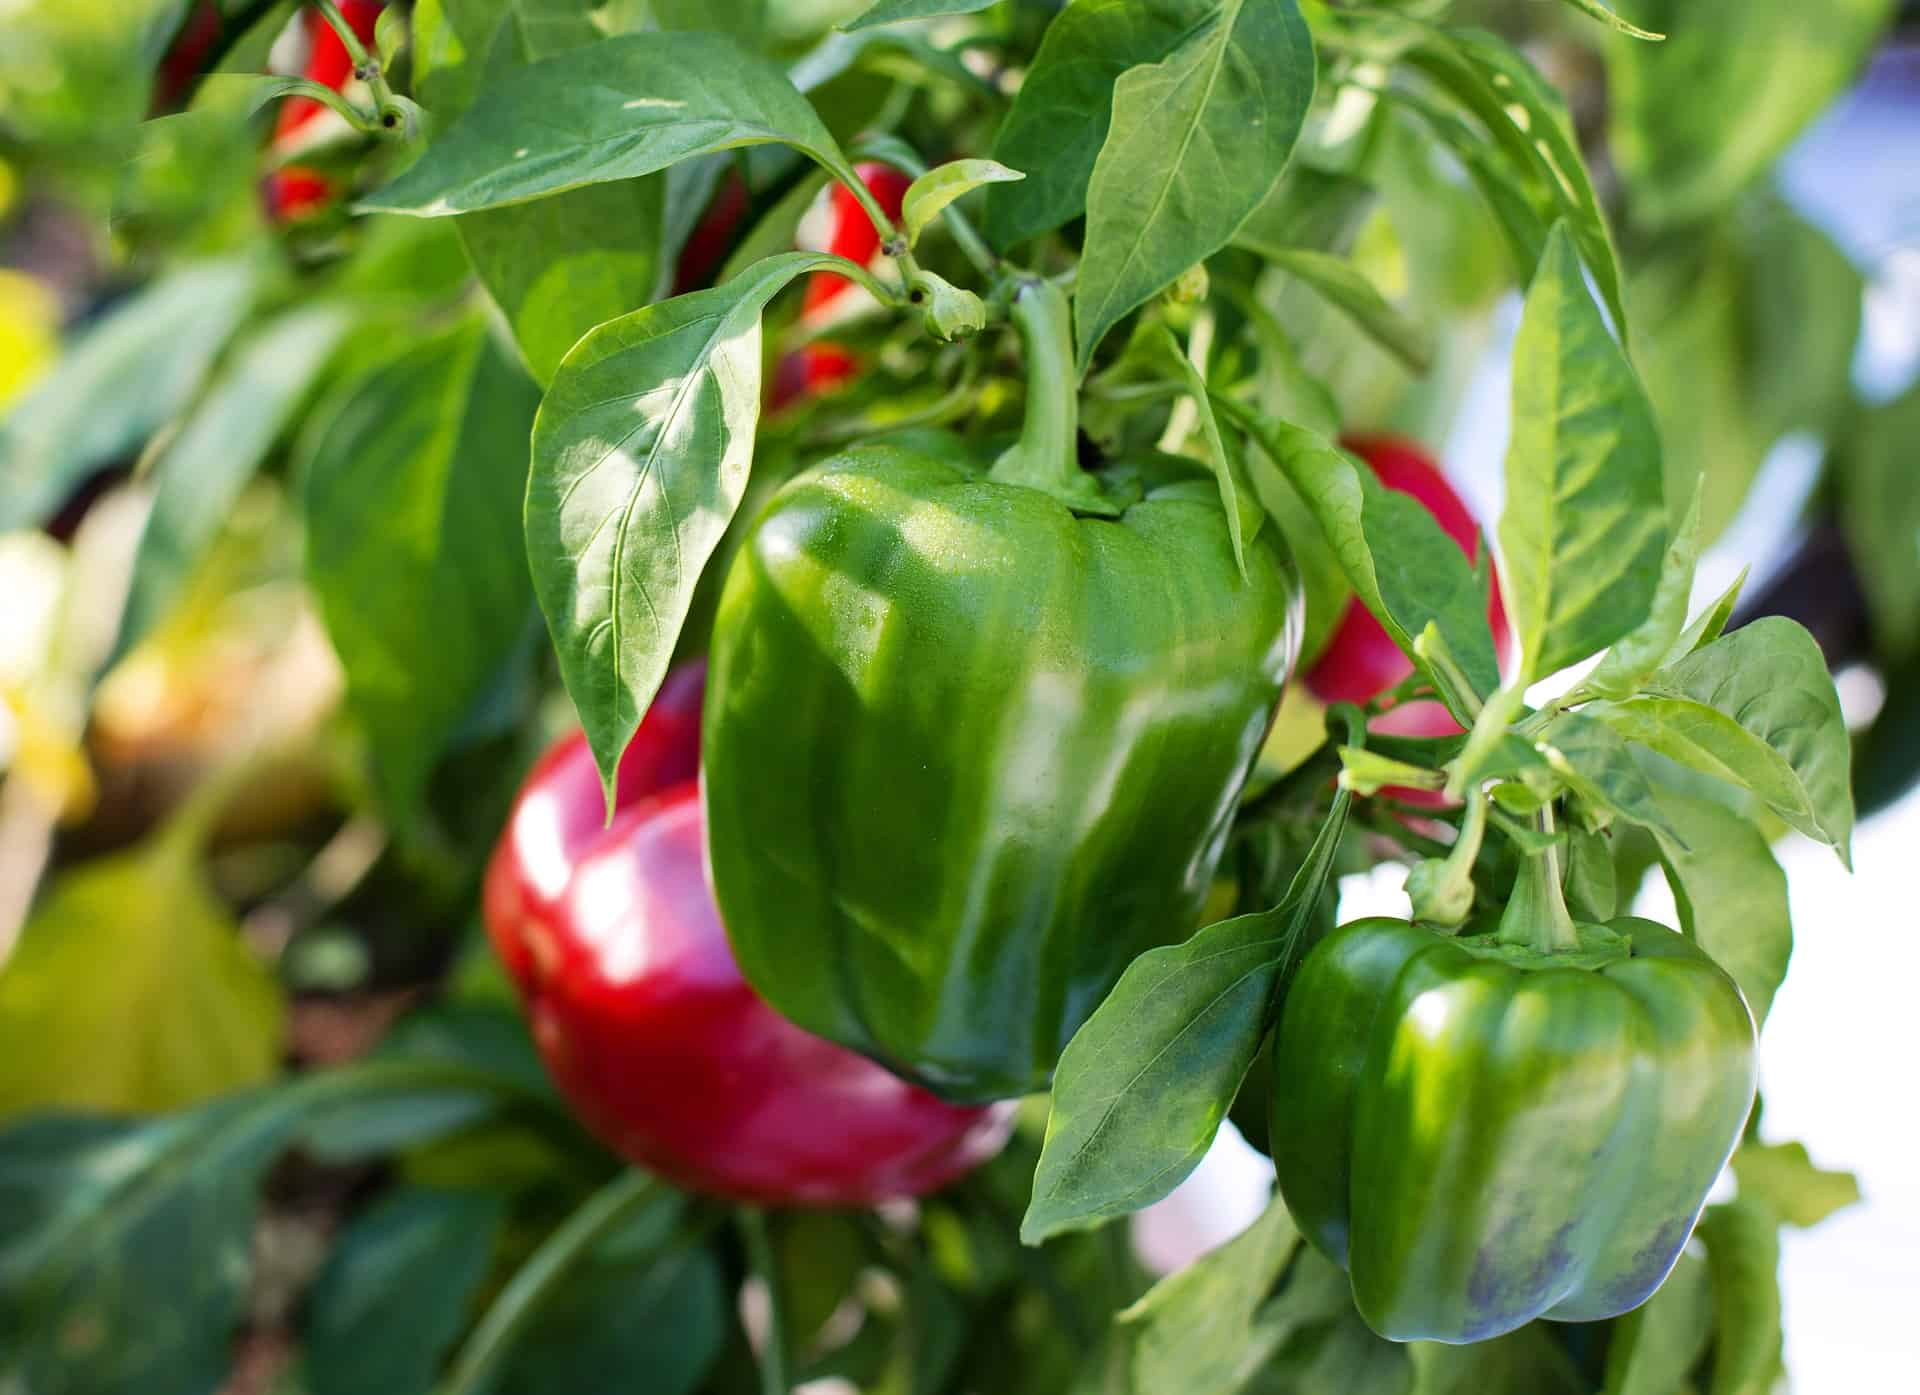 Best Hydroponic System for Peppers